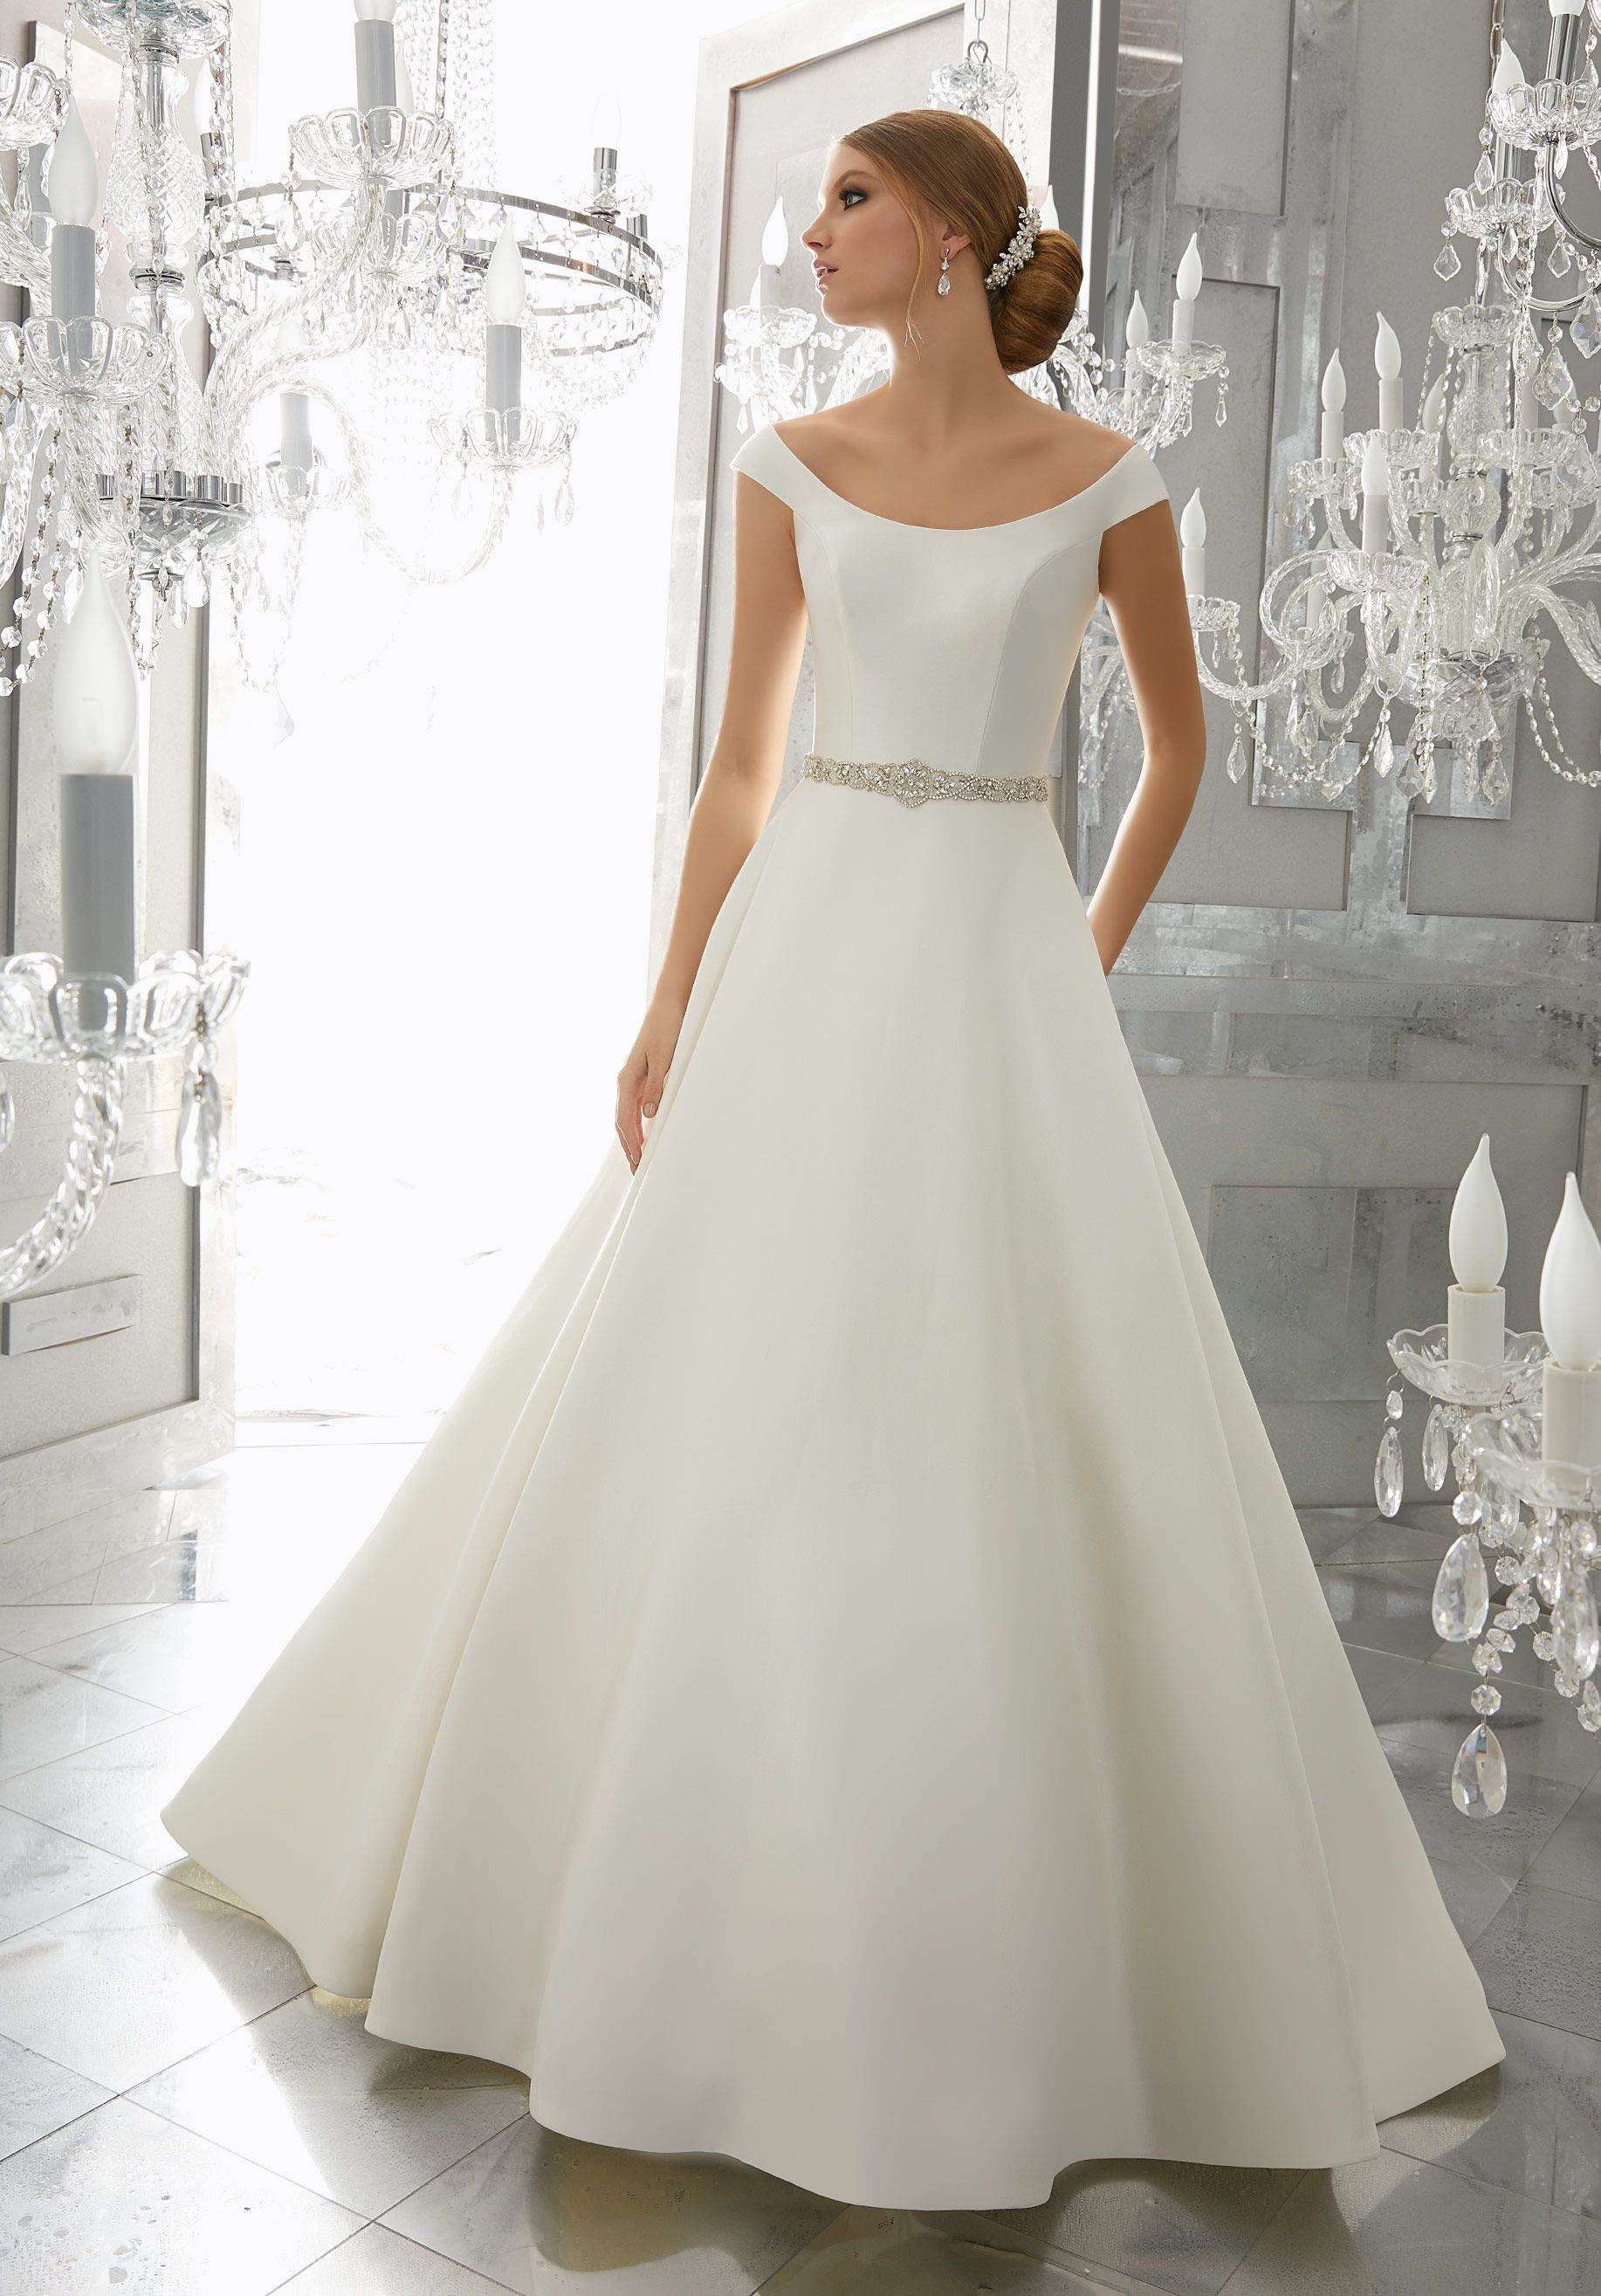 ae5727308c37 Classic and Chic, This Marcella Satin A-Line Wedding Dress Features an  Elegant Off-the Shoulder Neckline and Removable Diamanté Beaded Belt.